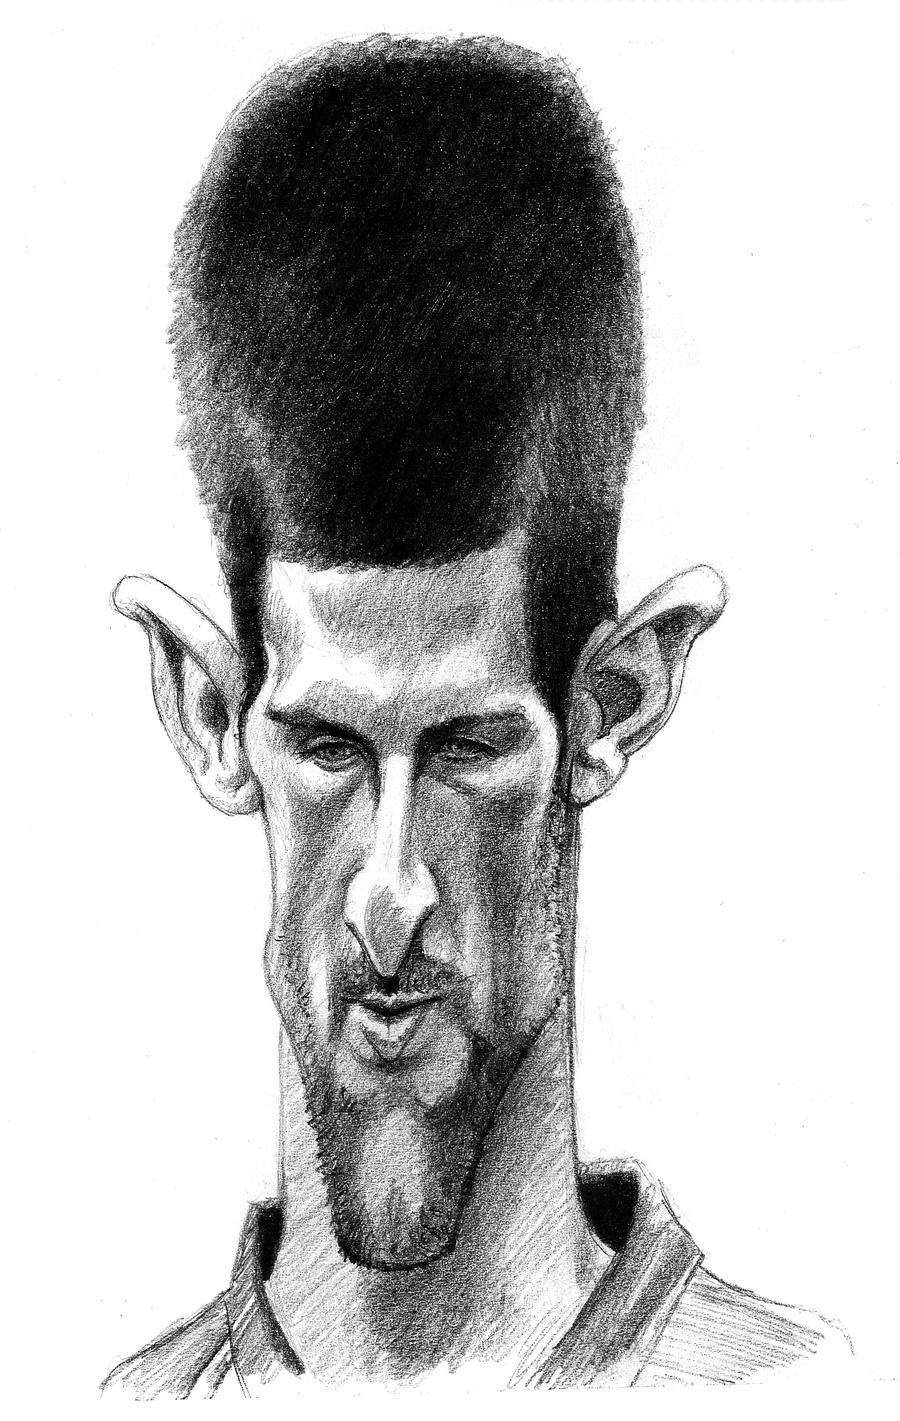 Novak Djokovic Sketch Caricature By Oilbigbrozer On Deviantart